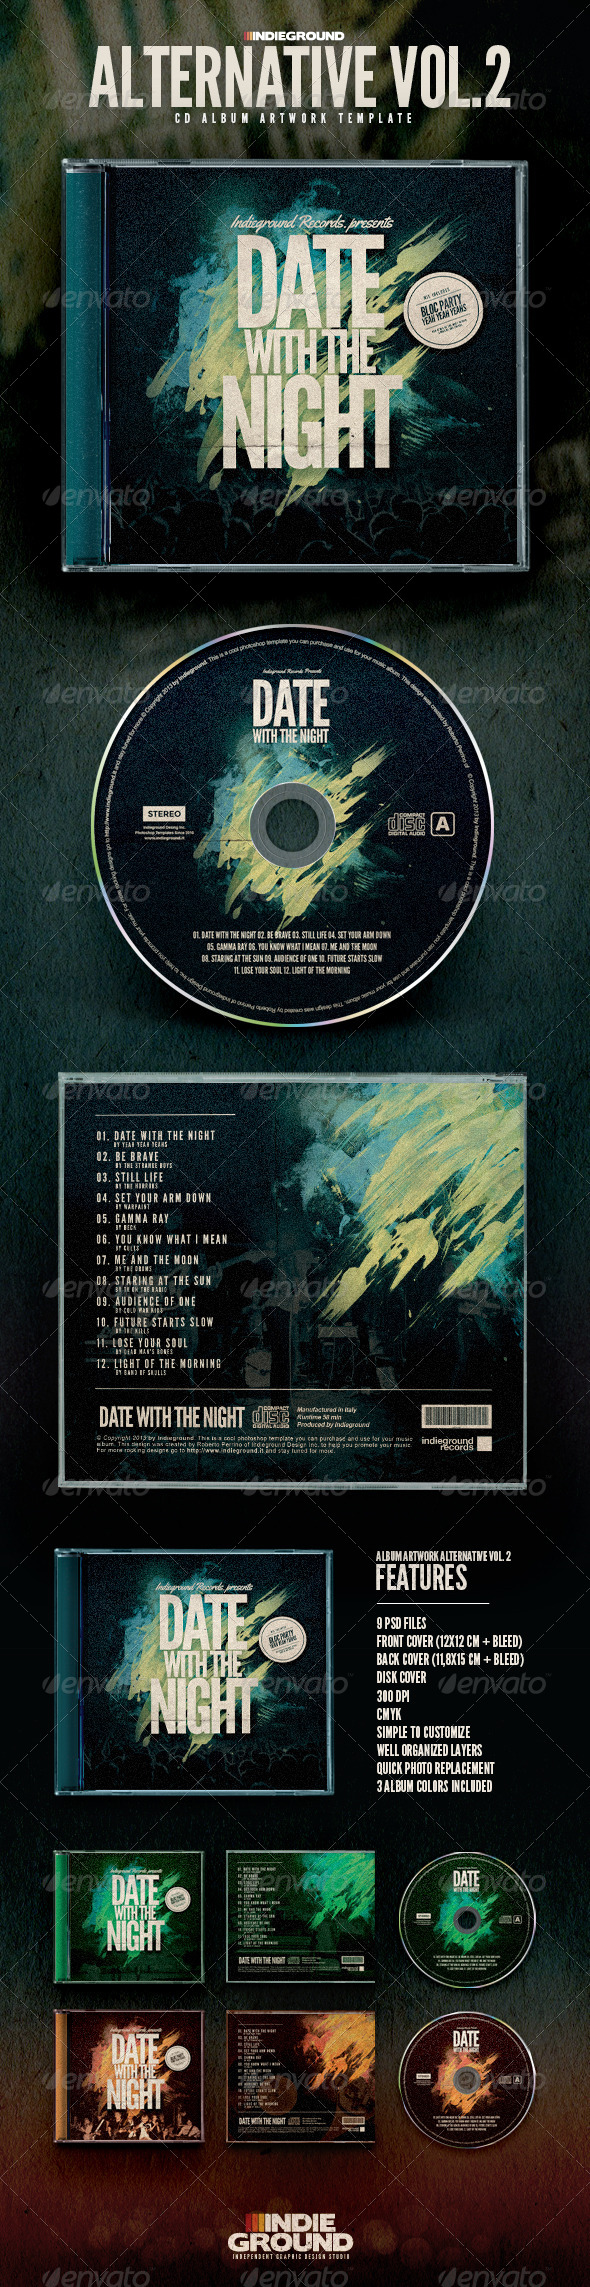 GraphicRiver Alternative CD Album Artwork Vol 2 6672285